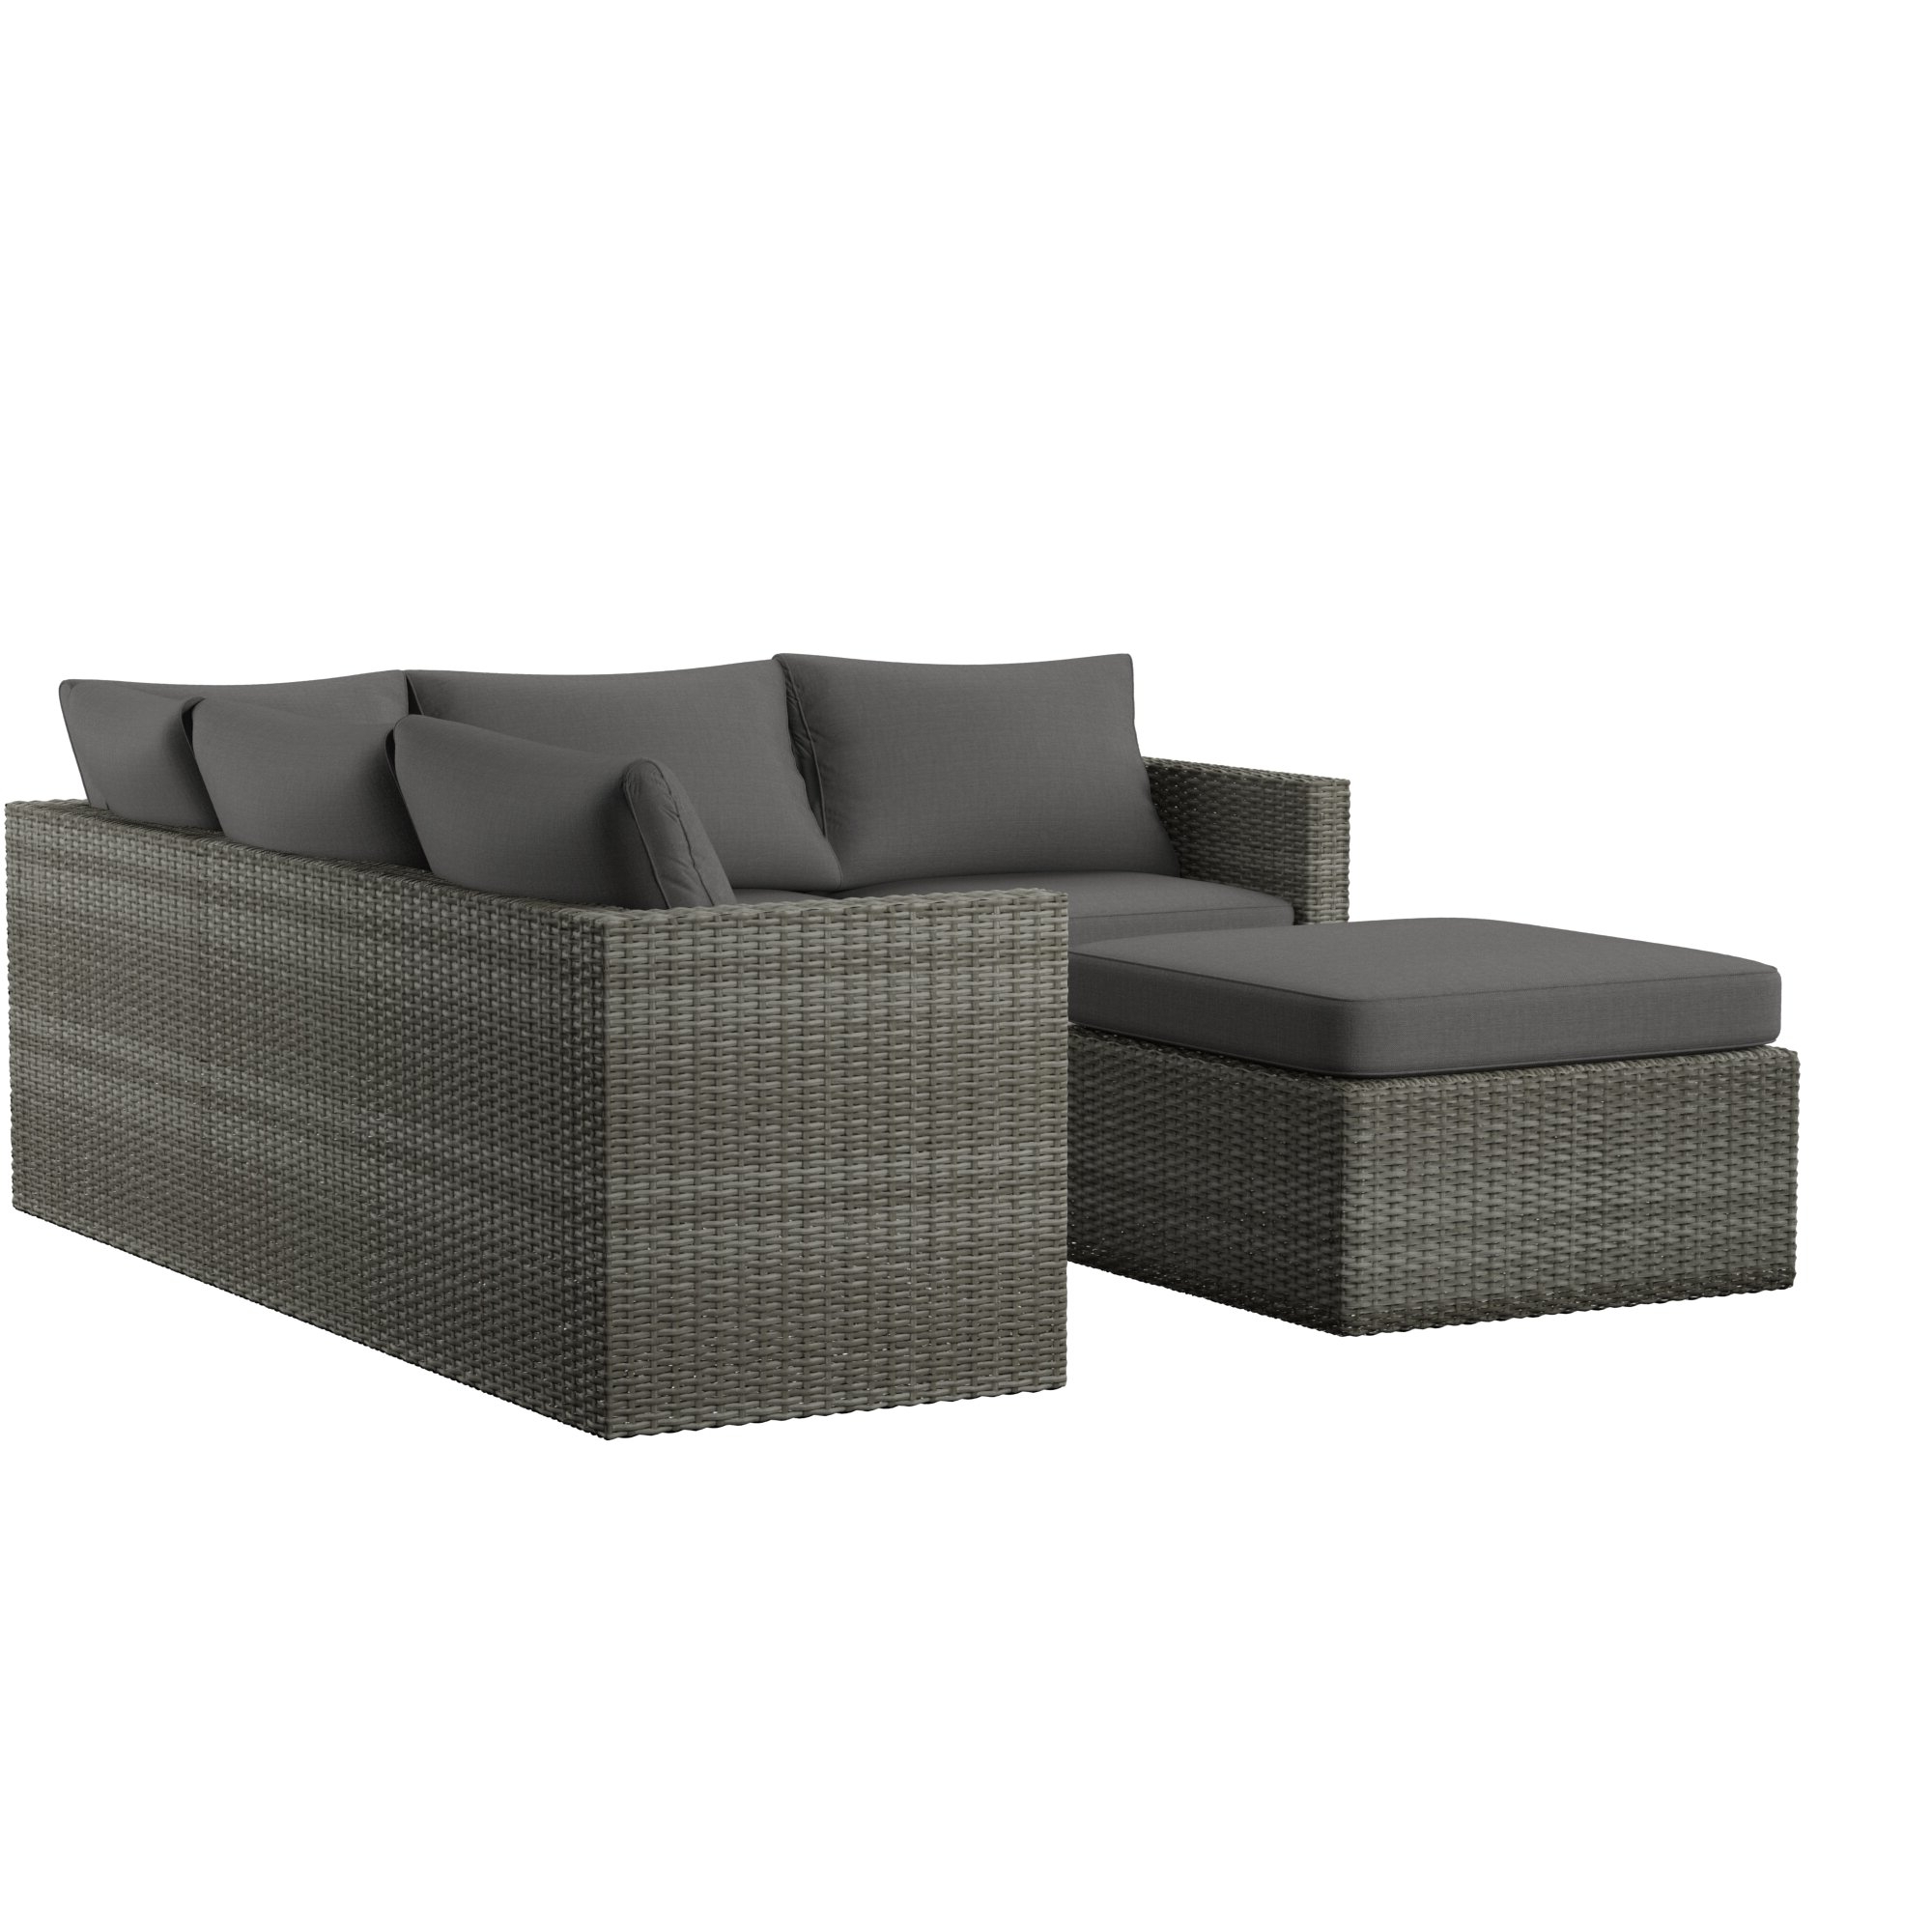 Lorentzen Patio Sectional With Cushions For Latest Lorentzen Patio Sectionals With Cushions (View 6 of 20)